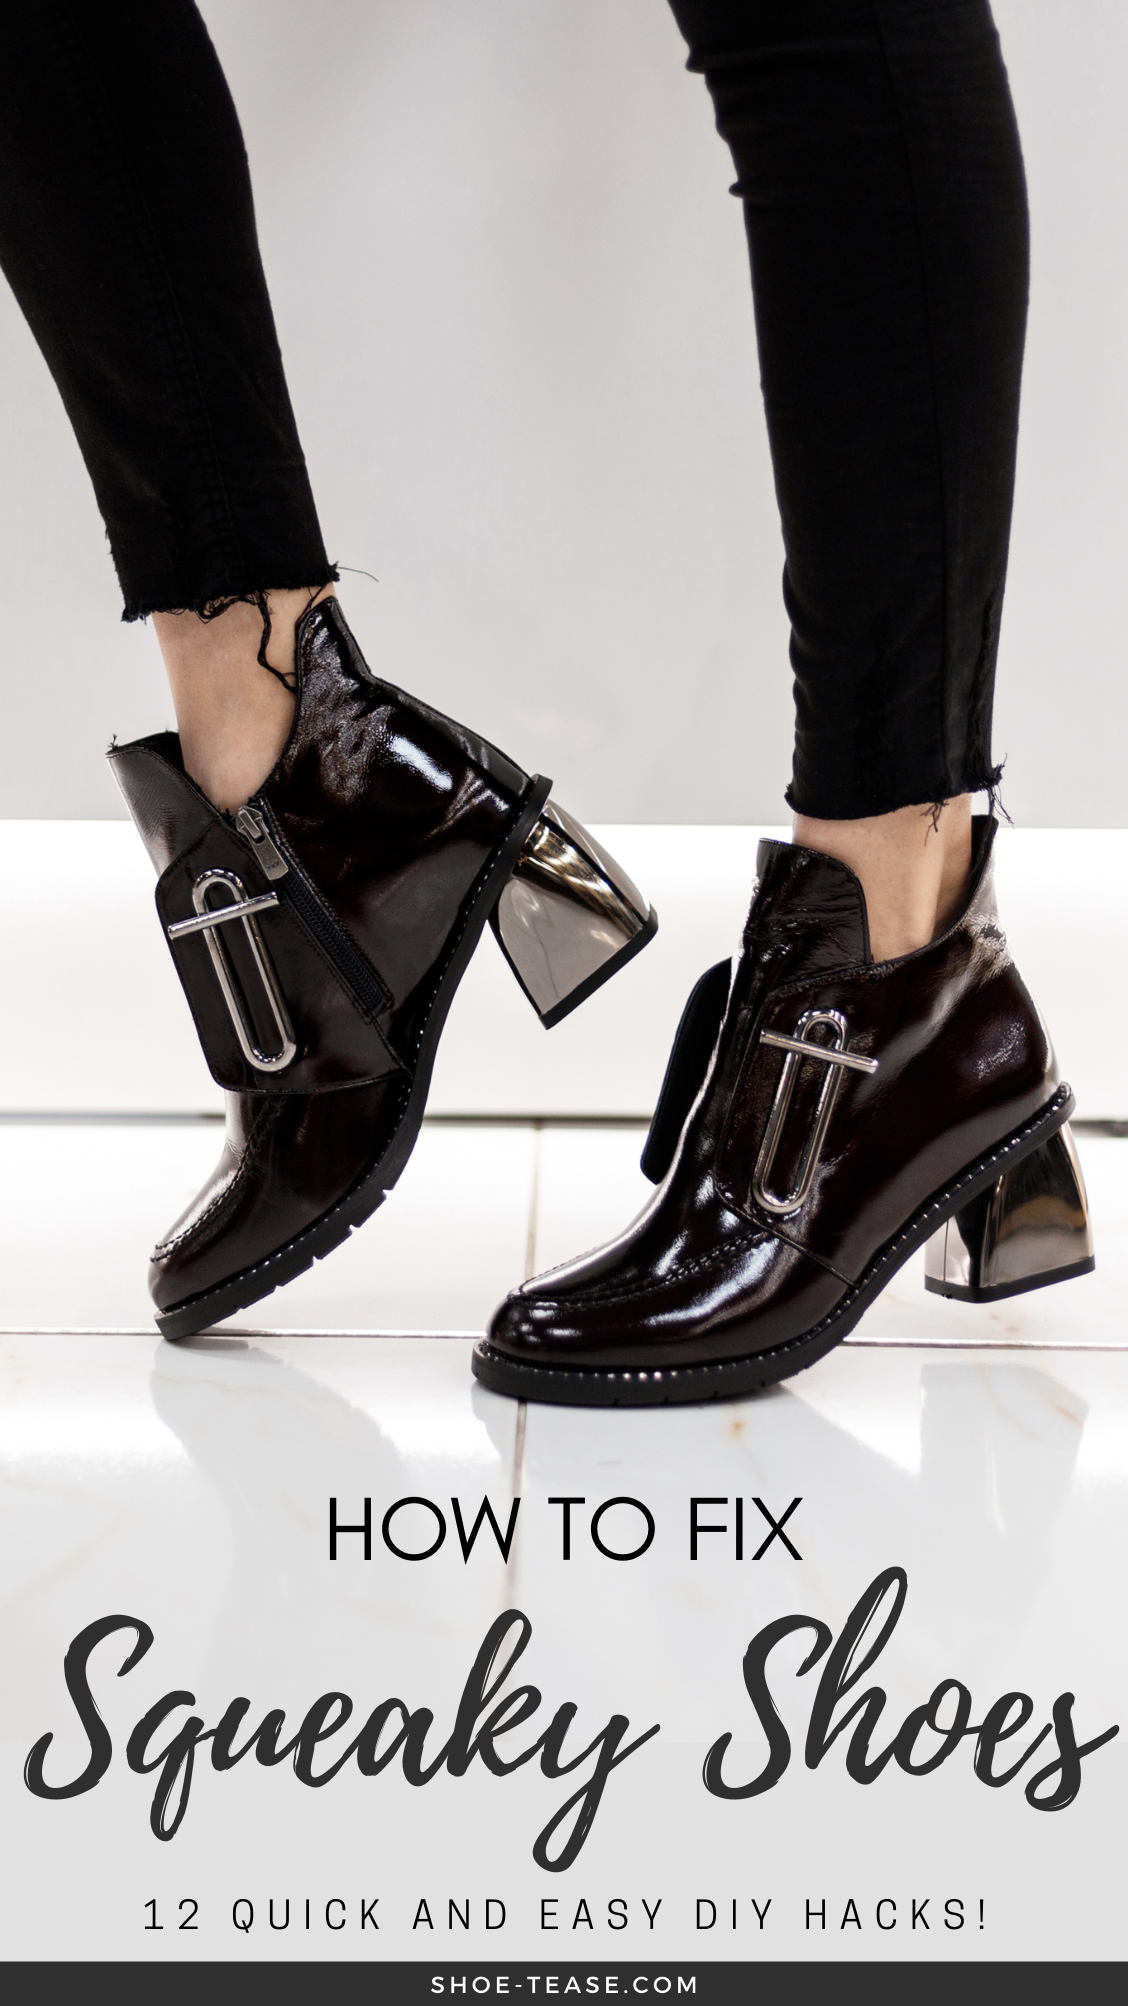 How to fix squeaky shoes text under image of woman wearing patent leather booties walking on shiny tiles.